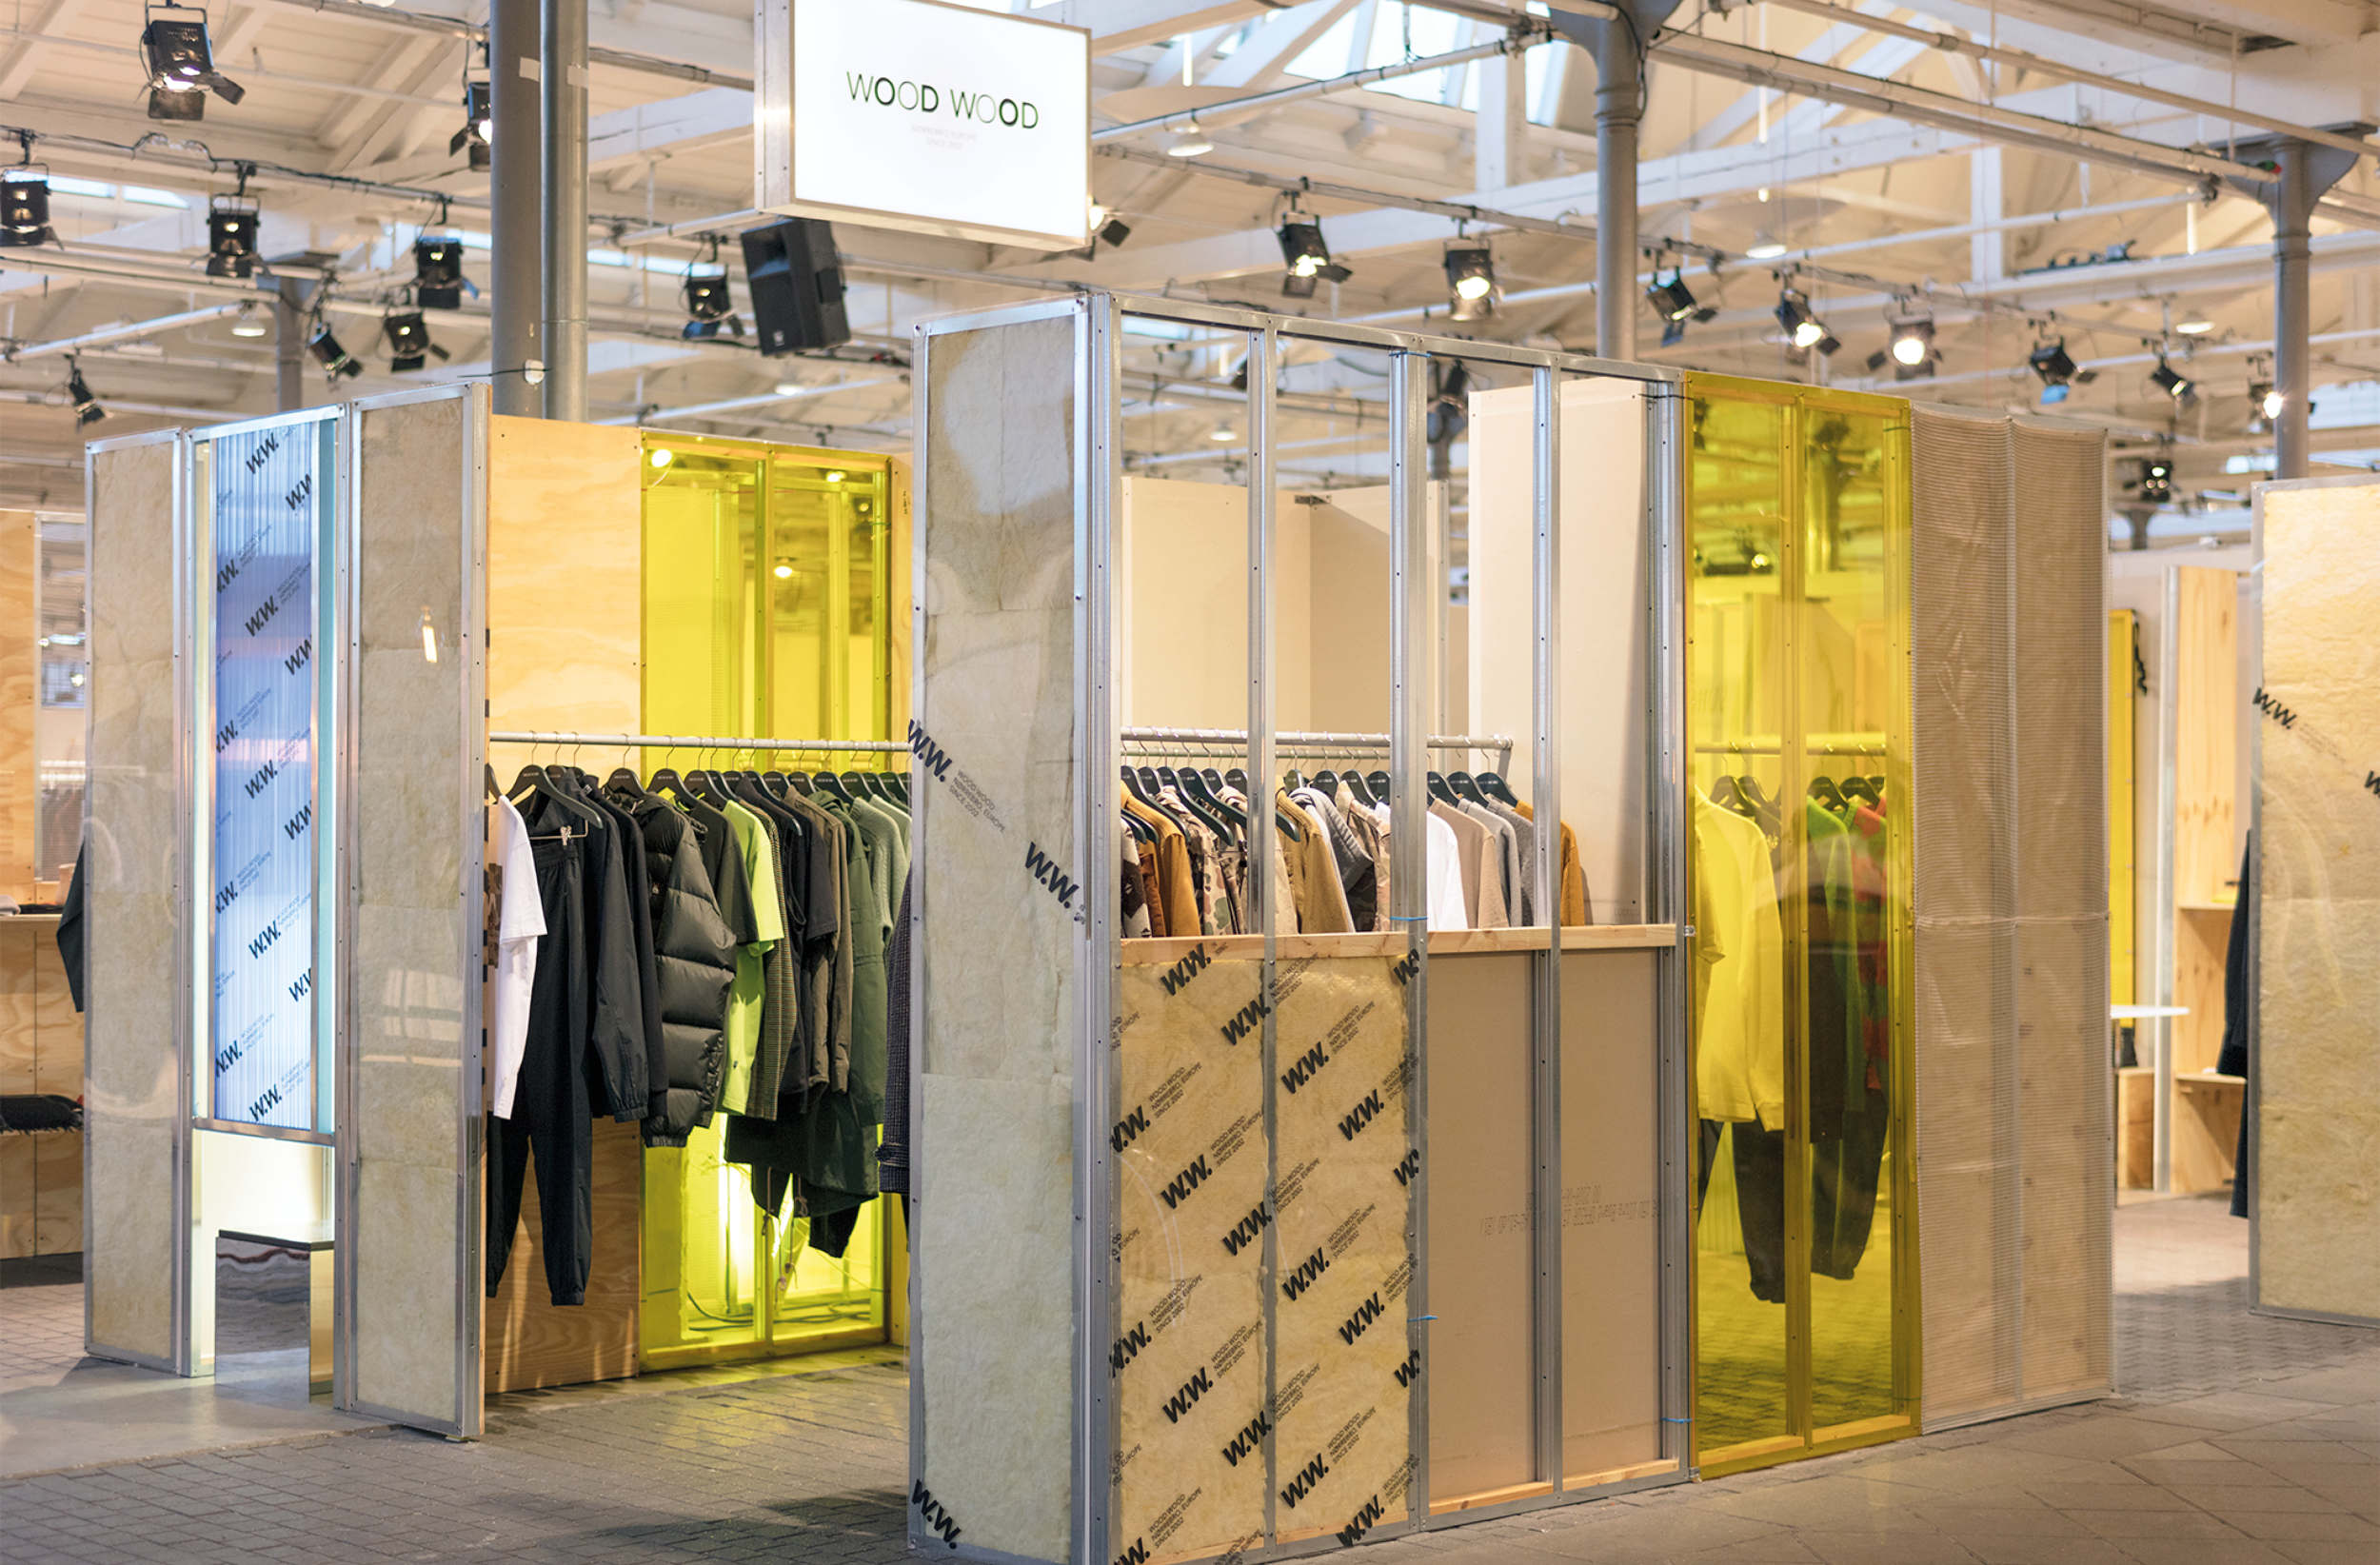 Exhibition Stand Clothes : Wood wood revolver exhibition booth spacon & x